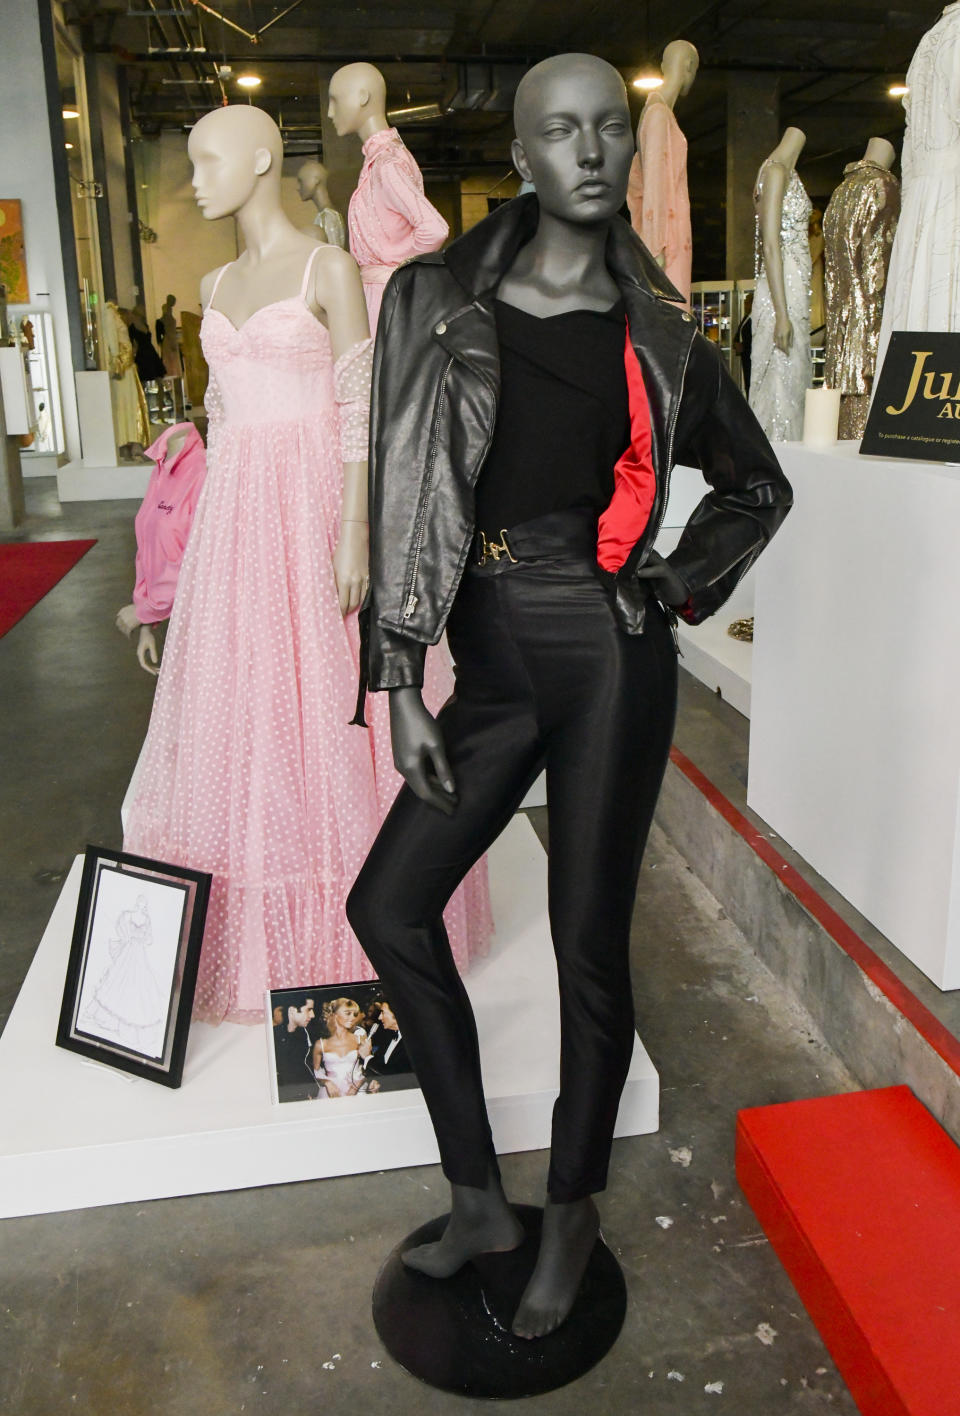 """BEVERLY HILLS, CALIFORNIA - OCTOBER 29: Olivia Newton-John 'Grease' costuming on display at  the VIP reception for upcoming """"Property of Olivia Newton-John Auction Event at Julien's Auctions on October 29, 2019 in Beverly Hills, California. (Photo by Rodin Eckenroth/Getty Images)"""